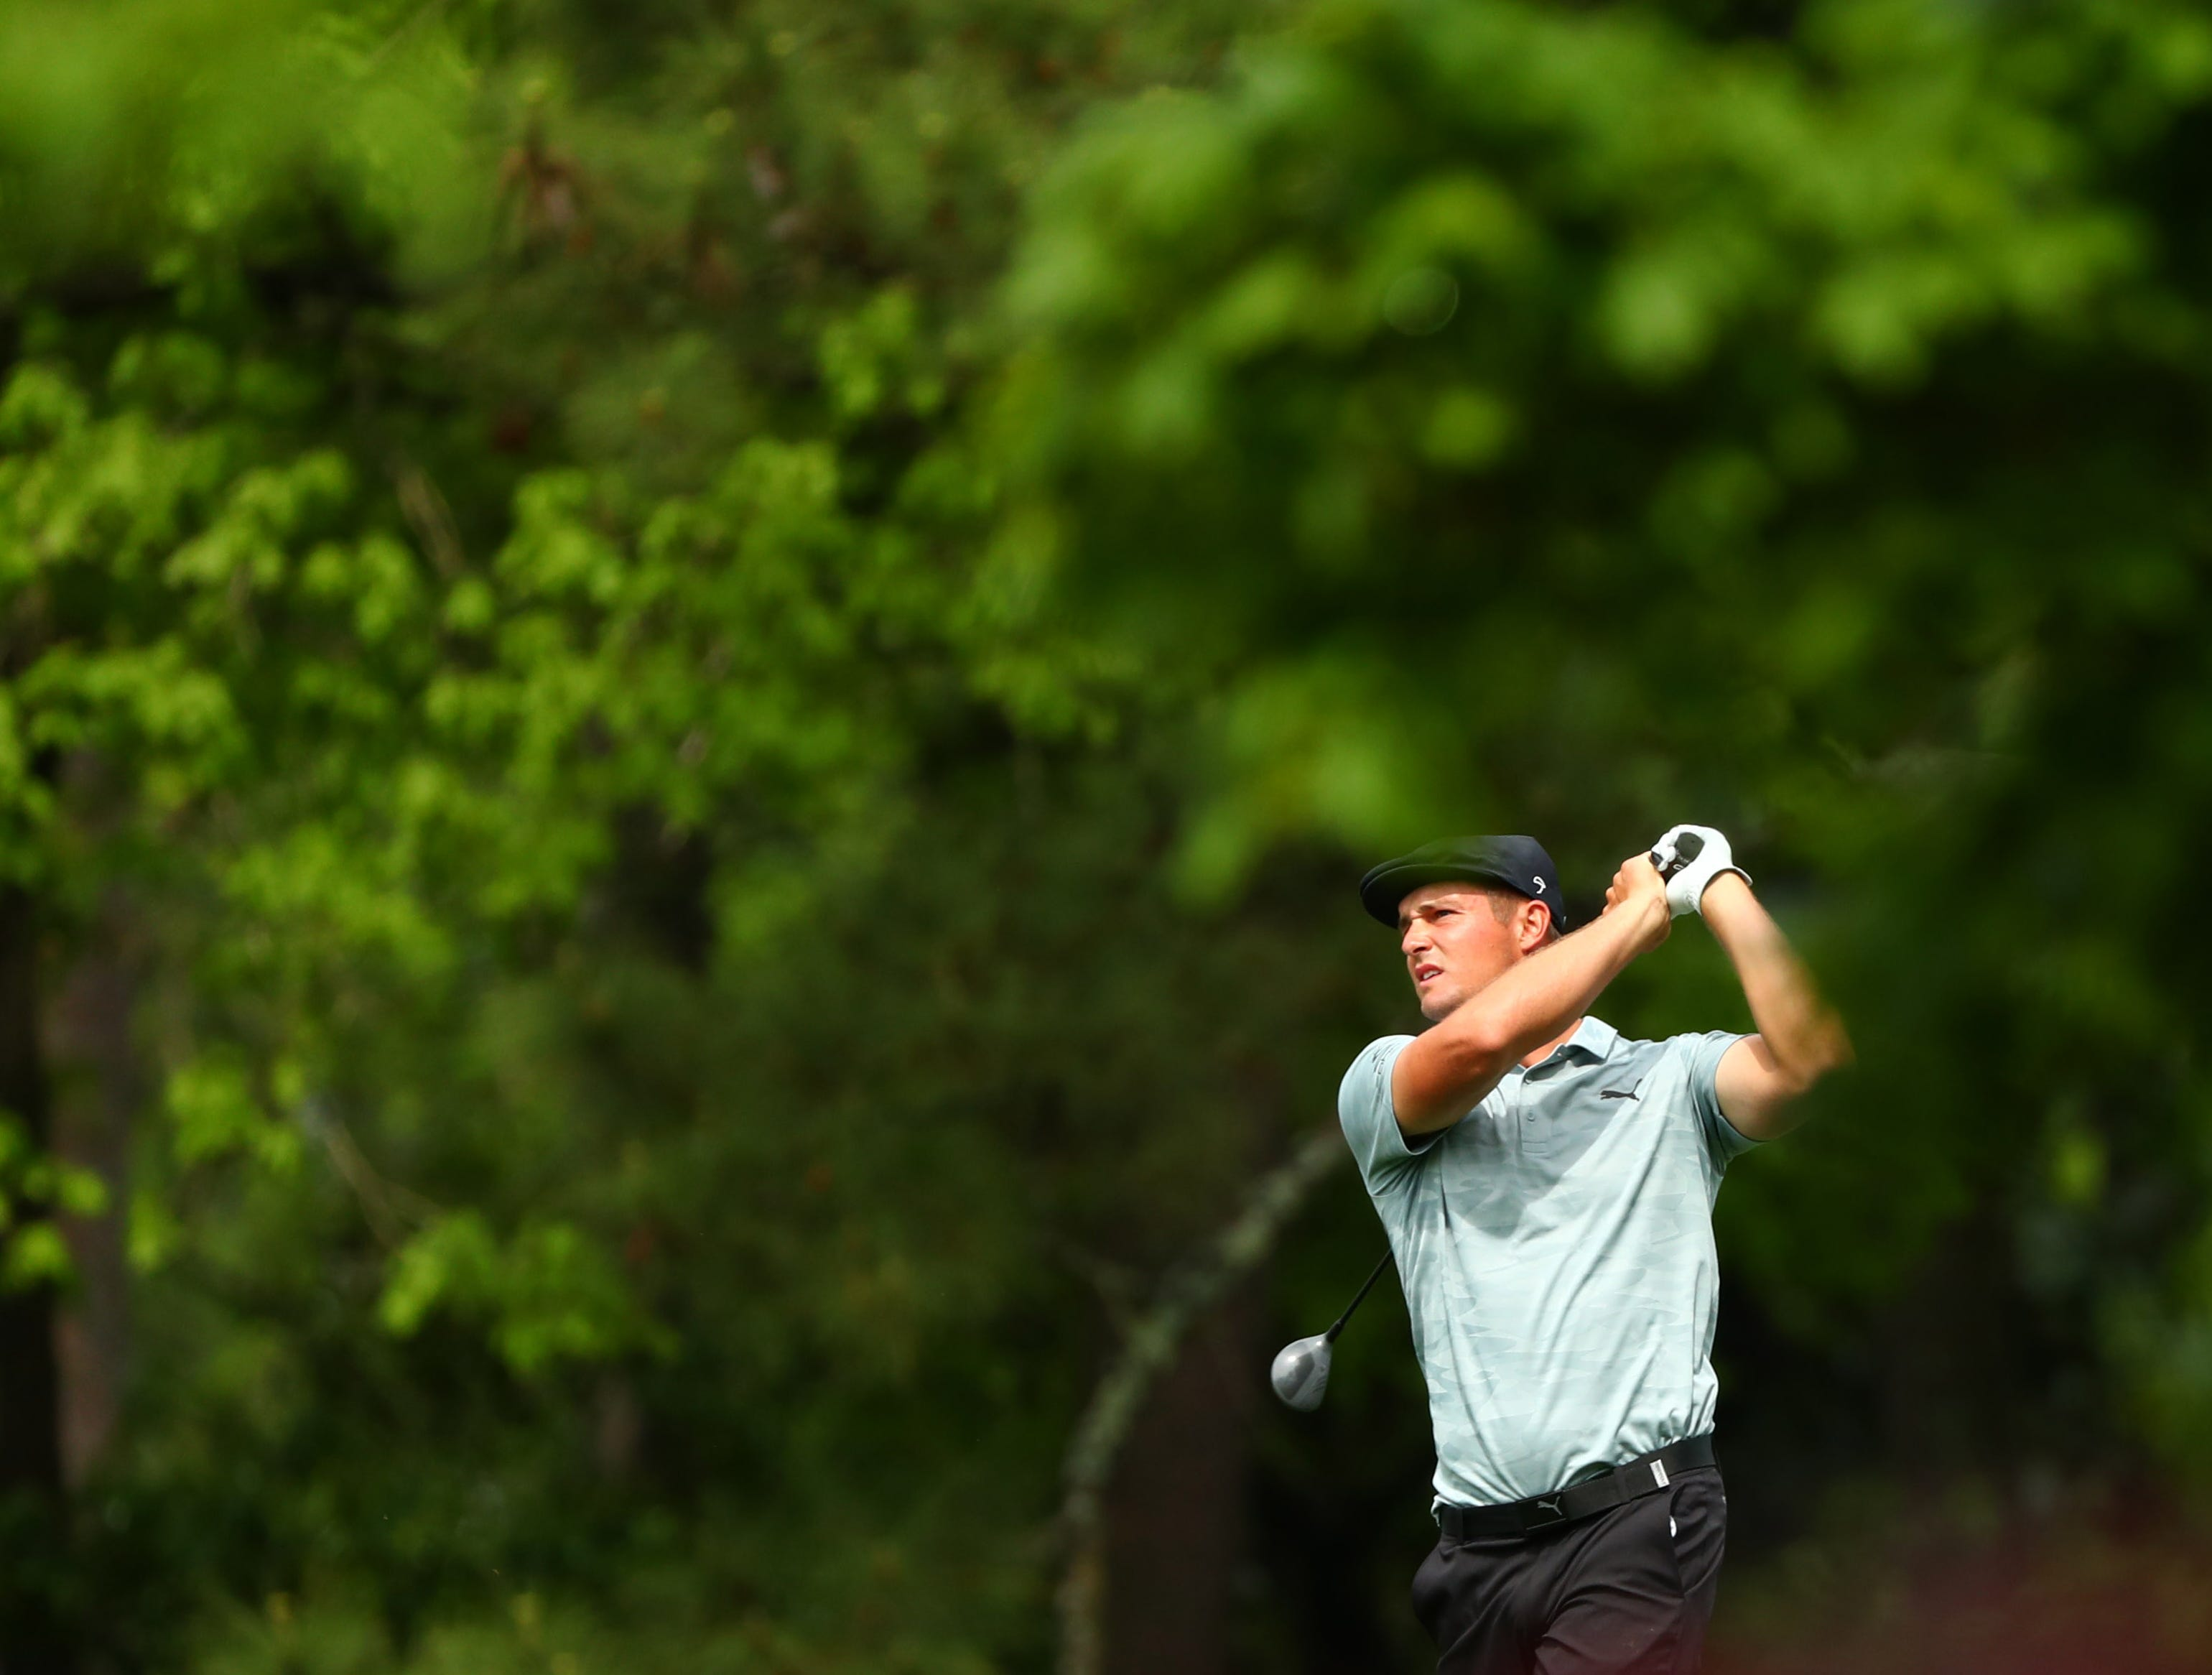 Apr 12, 2019; Augusta, GA, USA; Bryson DeChambeau plays a shot on the 2nd hole during the second round of The Masters golf tournament at Augusta National Golf Club. Mandatory Credit: Rob Schumacher-USA TODAY Sports